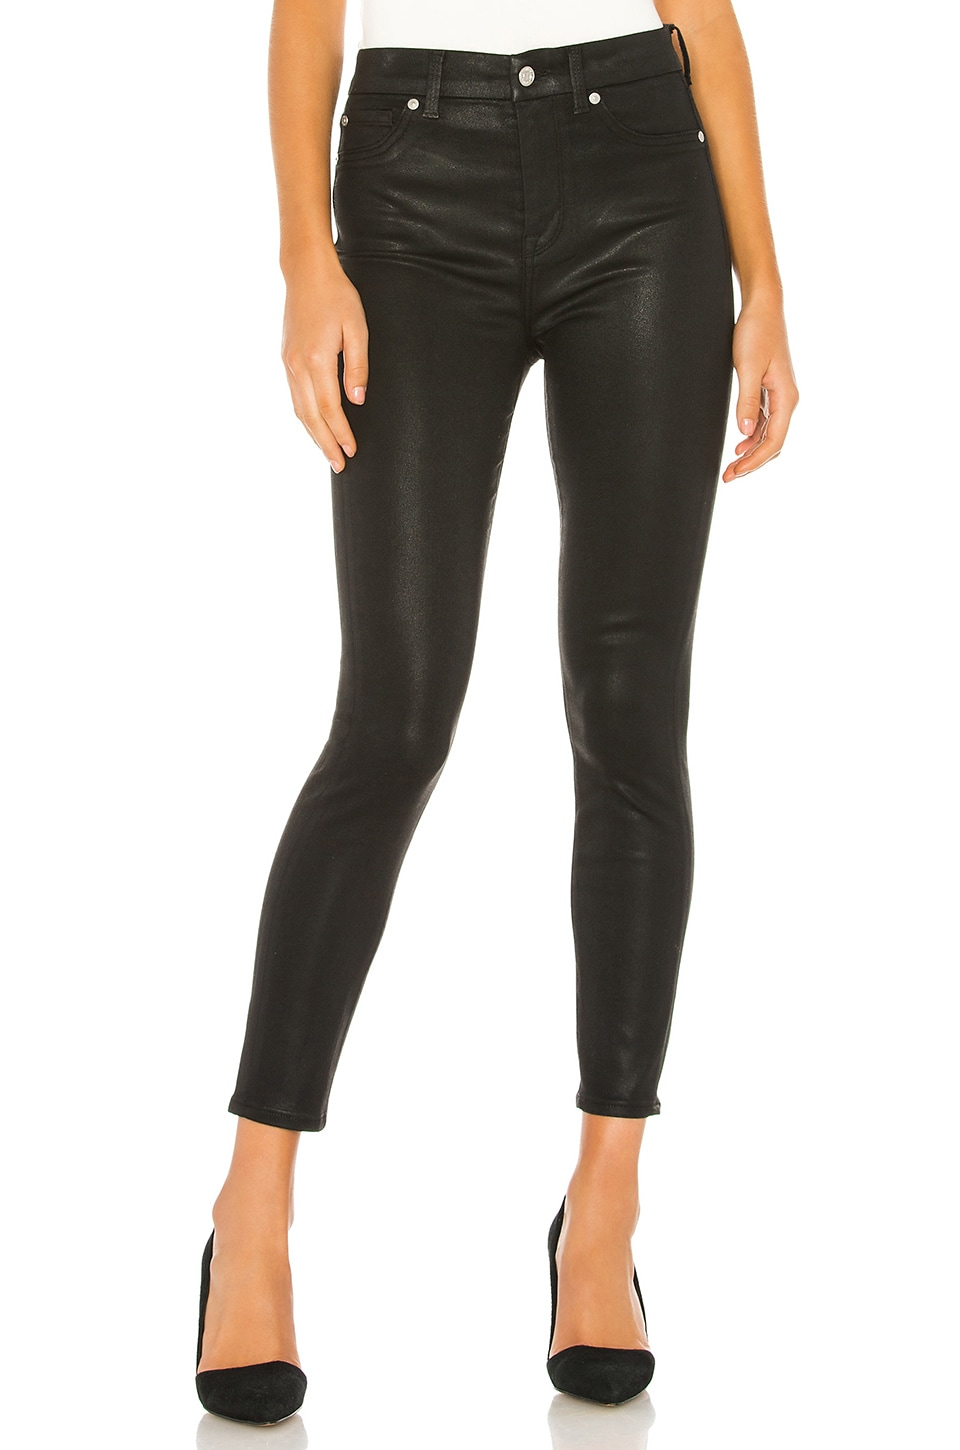 7 For All Mankind B(Air) The High Waist Ankle Skinny in Black Coating